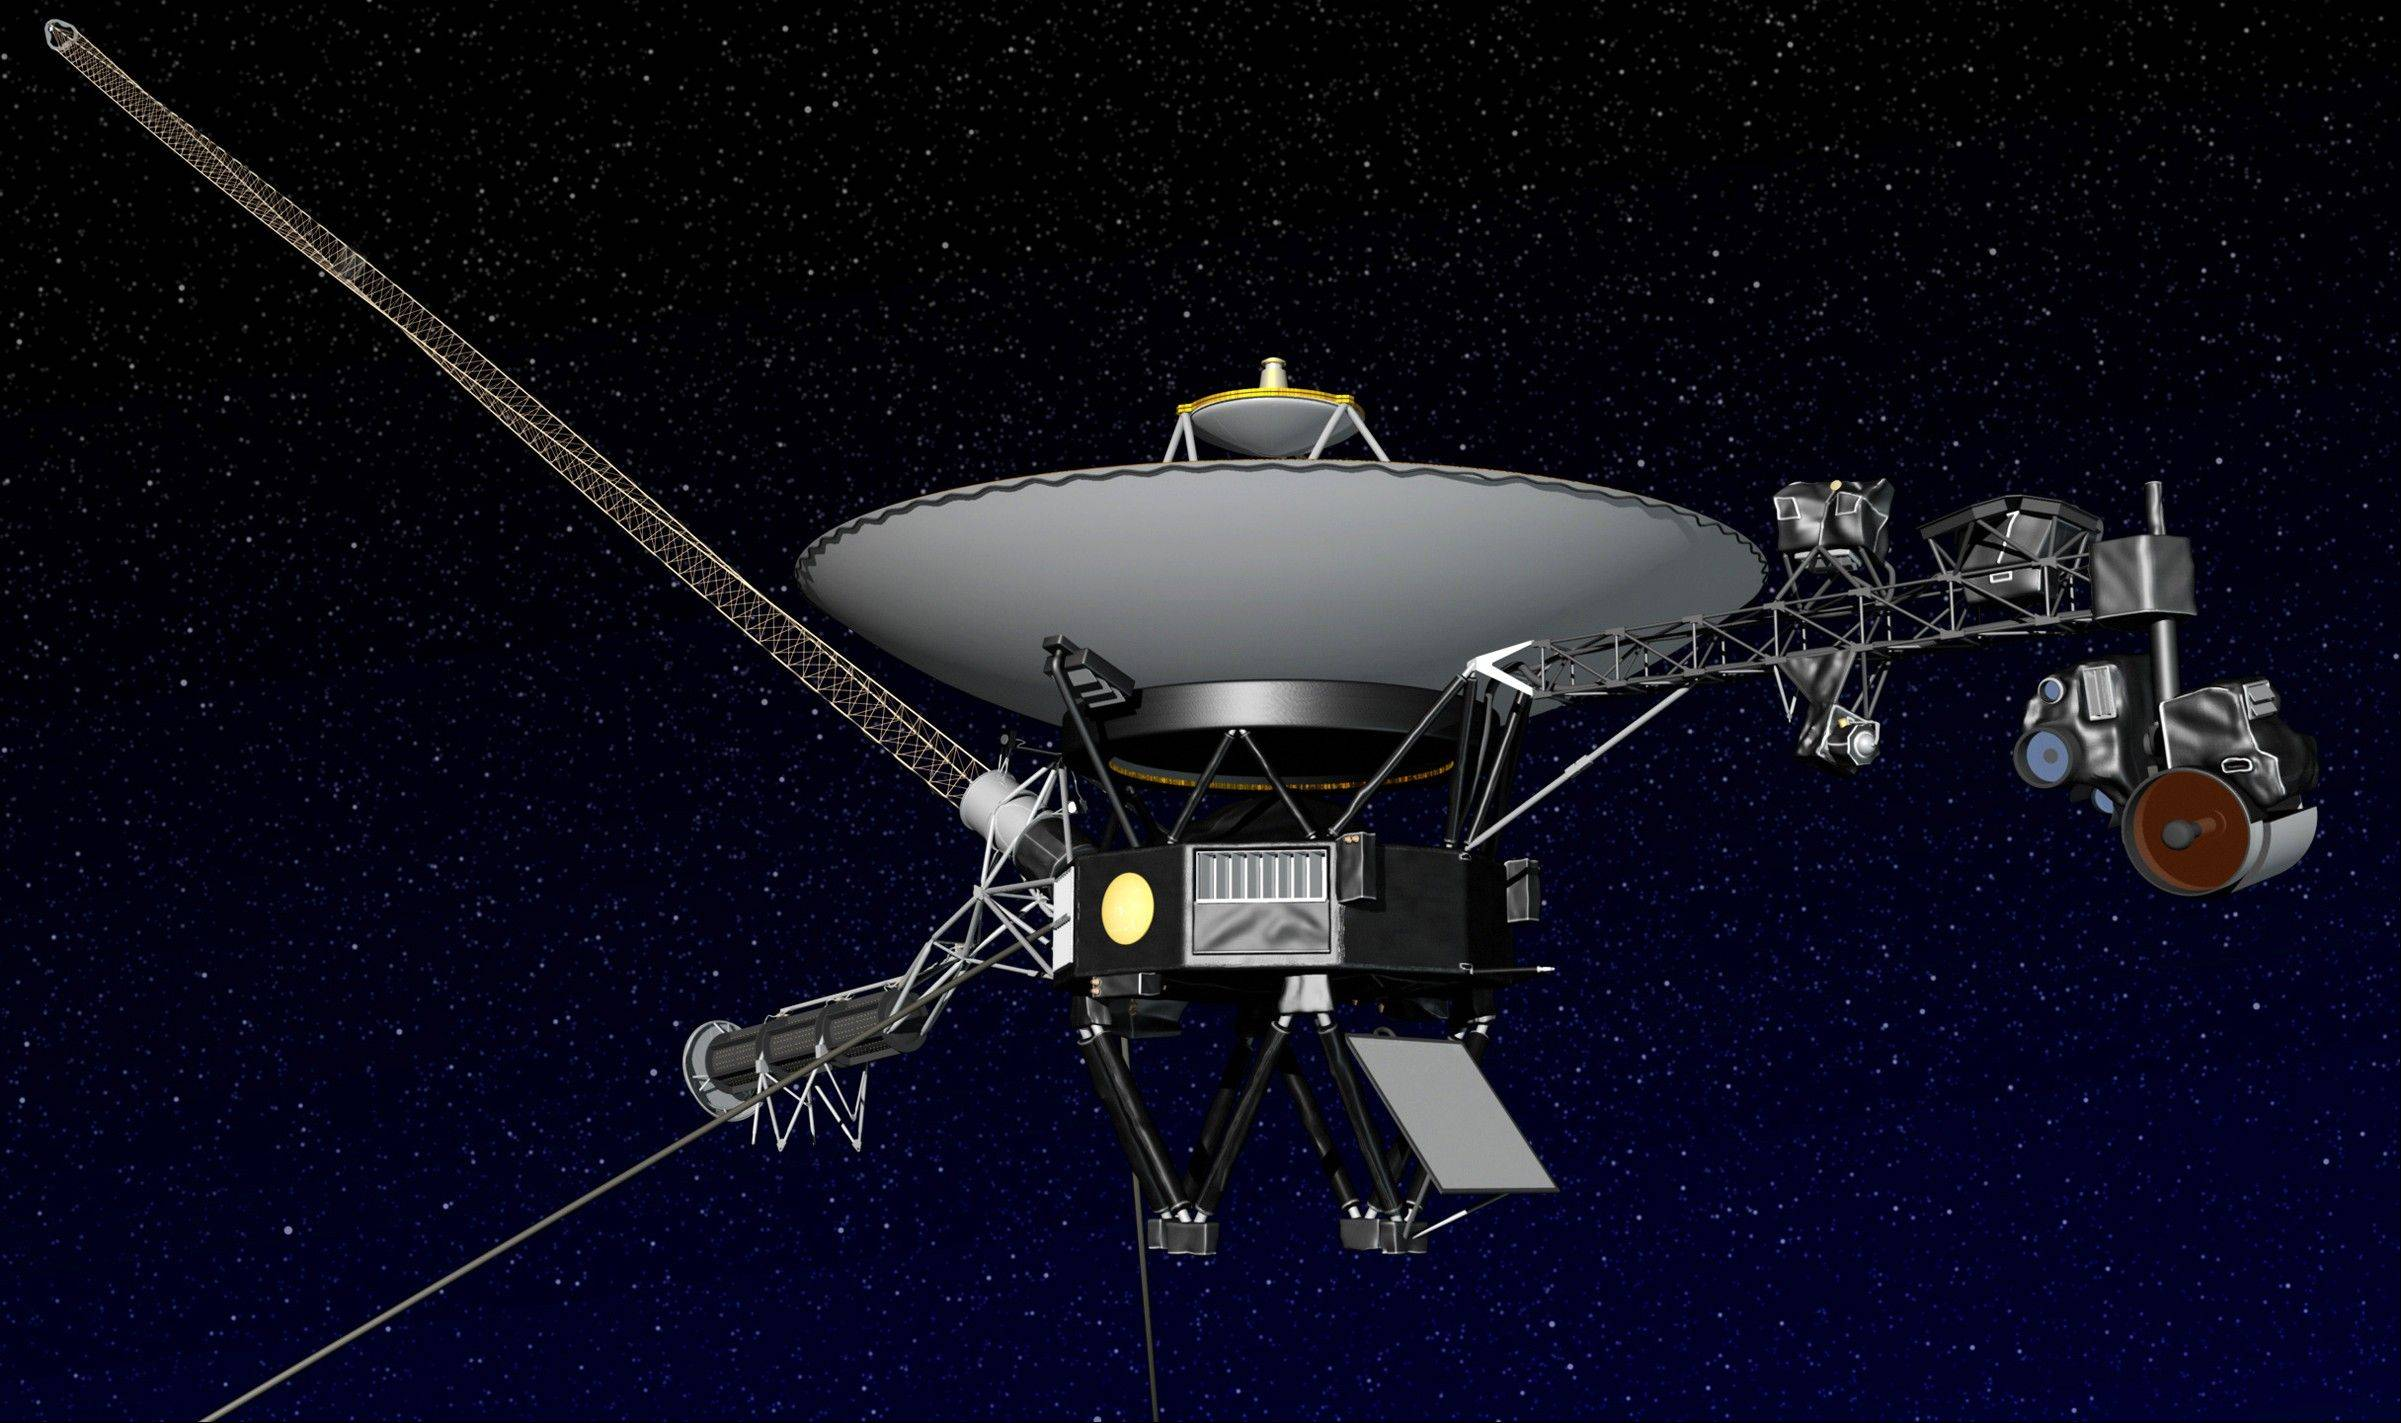 The Voyager 1 spacecraft, seen here in an artist's rendering, is farther from Earth than any man-made object has ever gone.